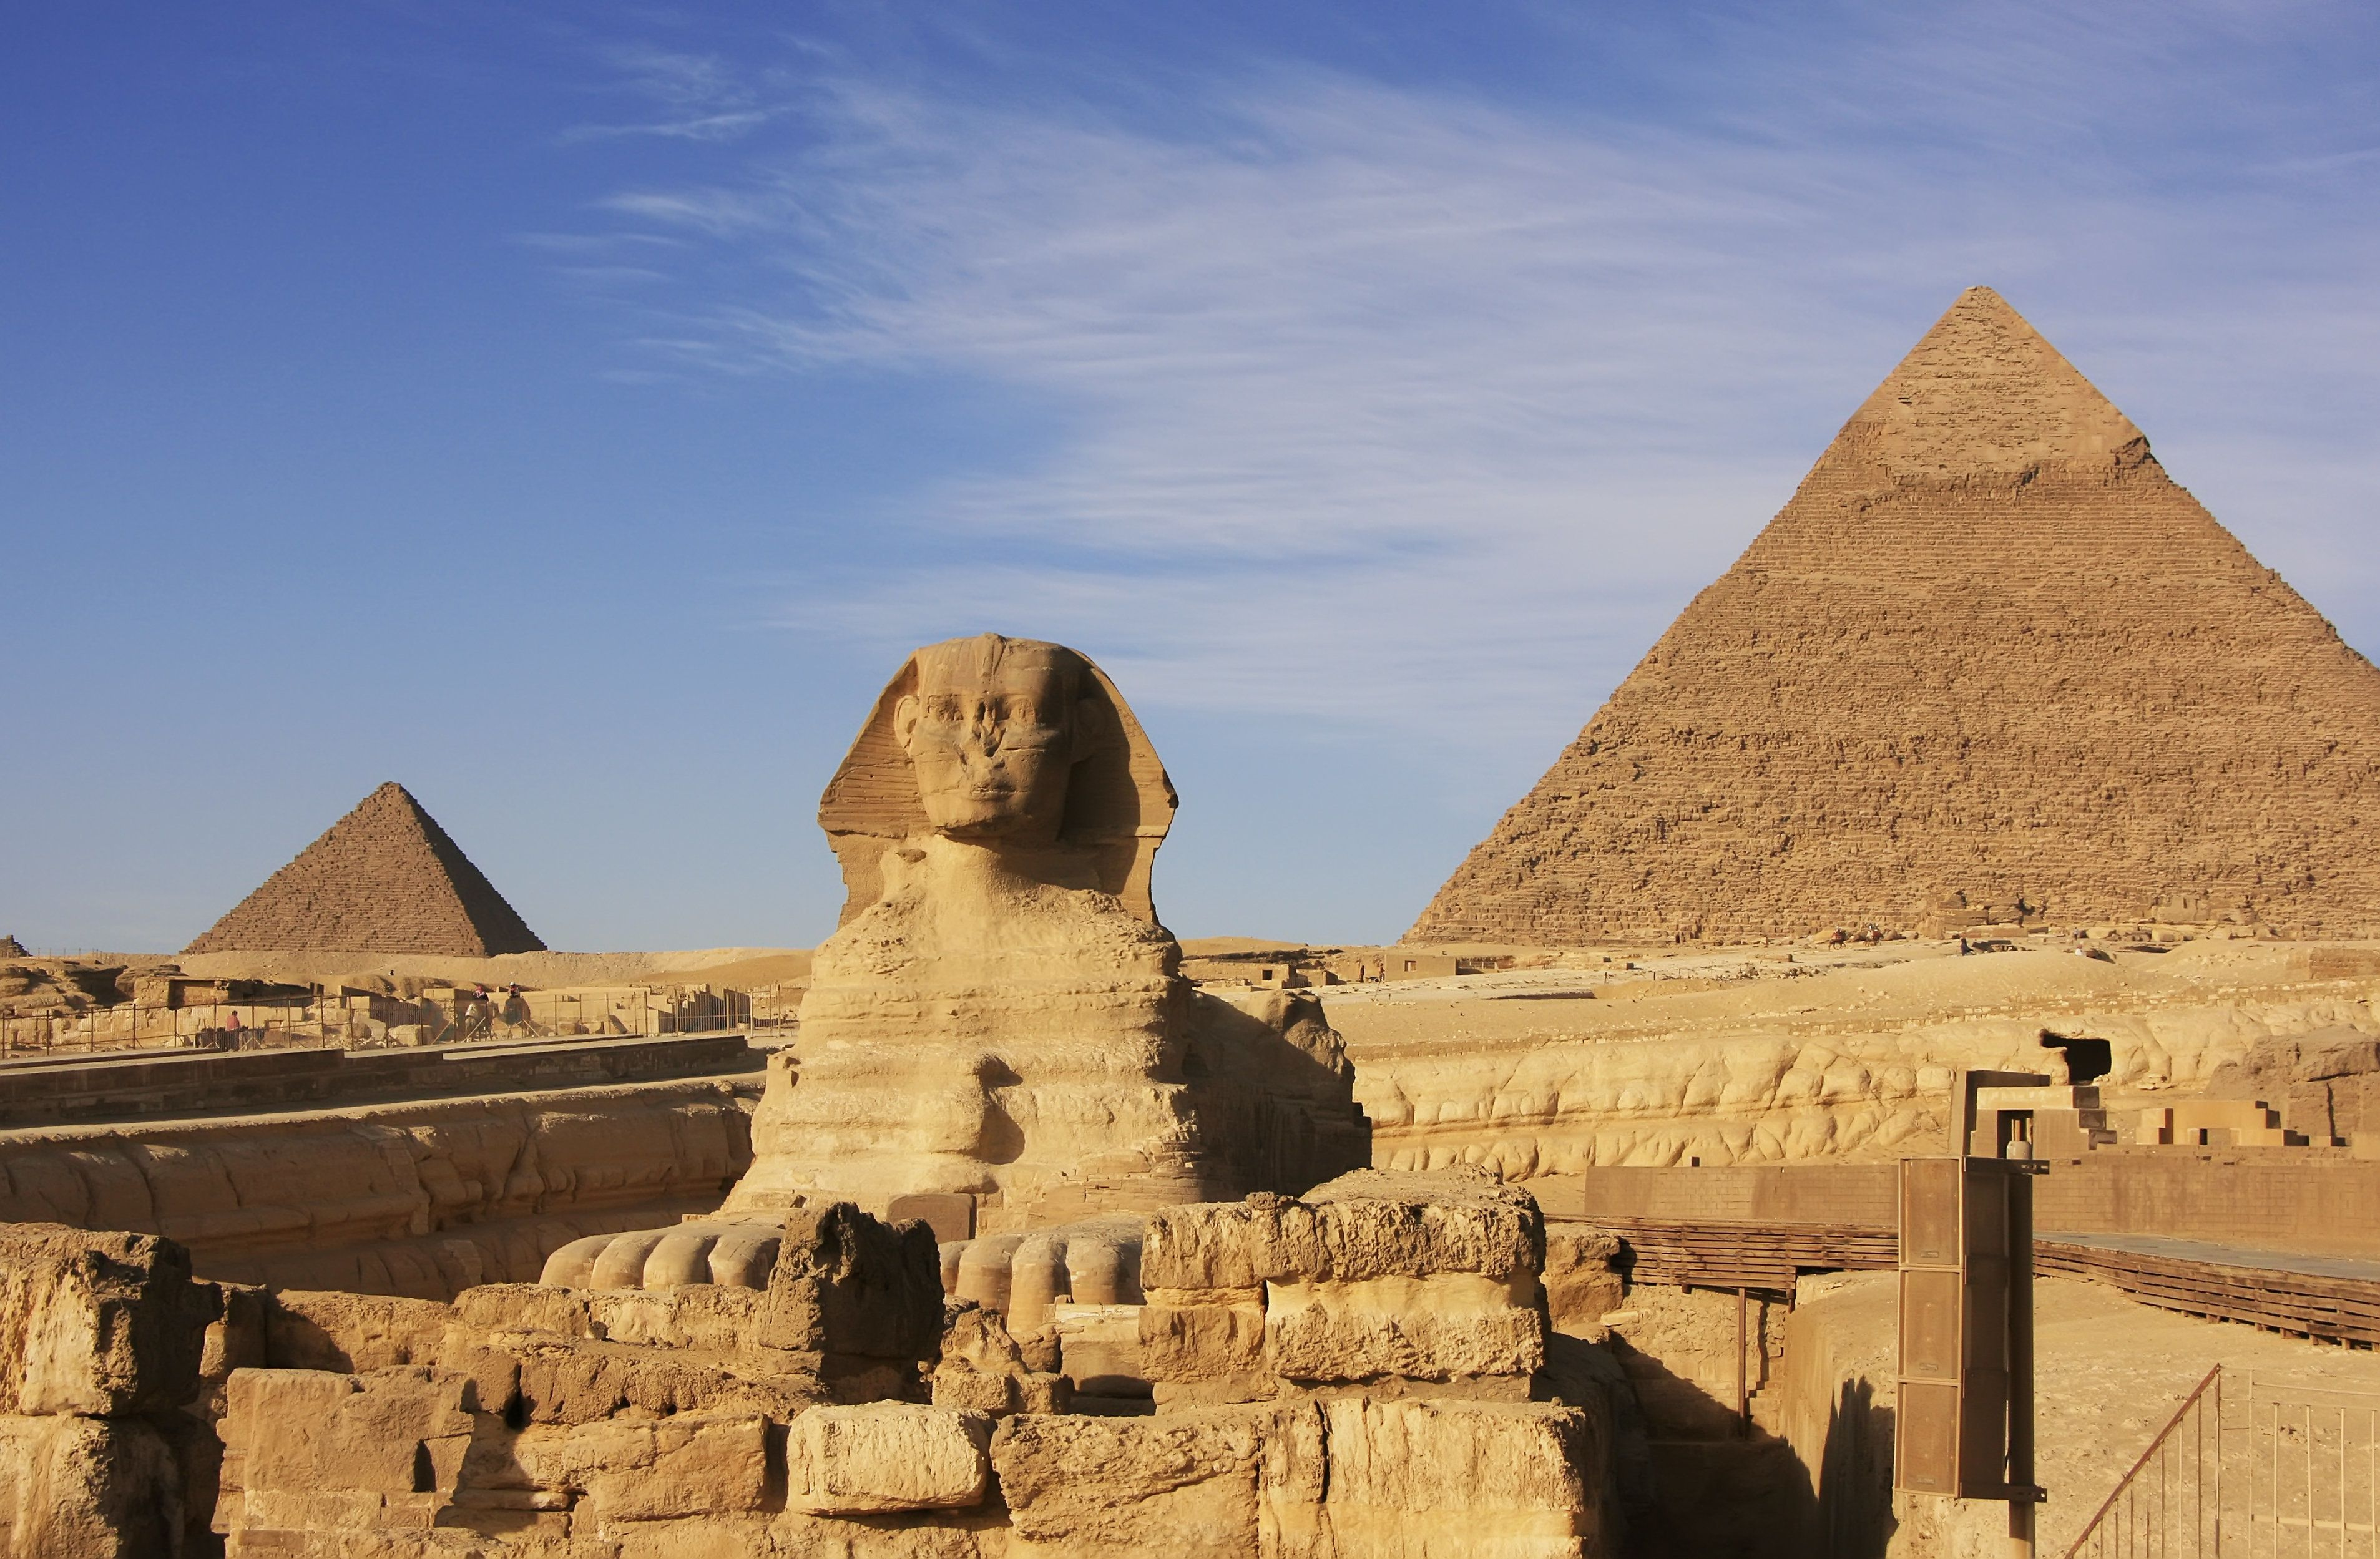 egypt to scan ancient pyramids with cosmic rays | huffpost